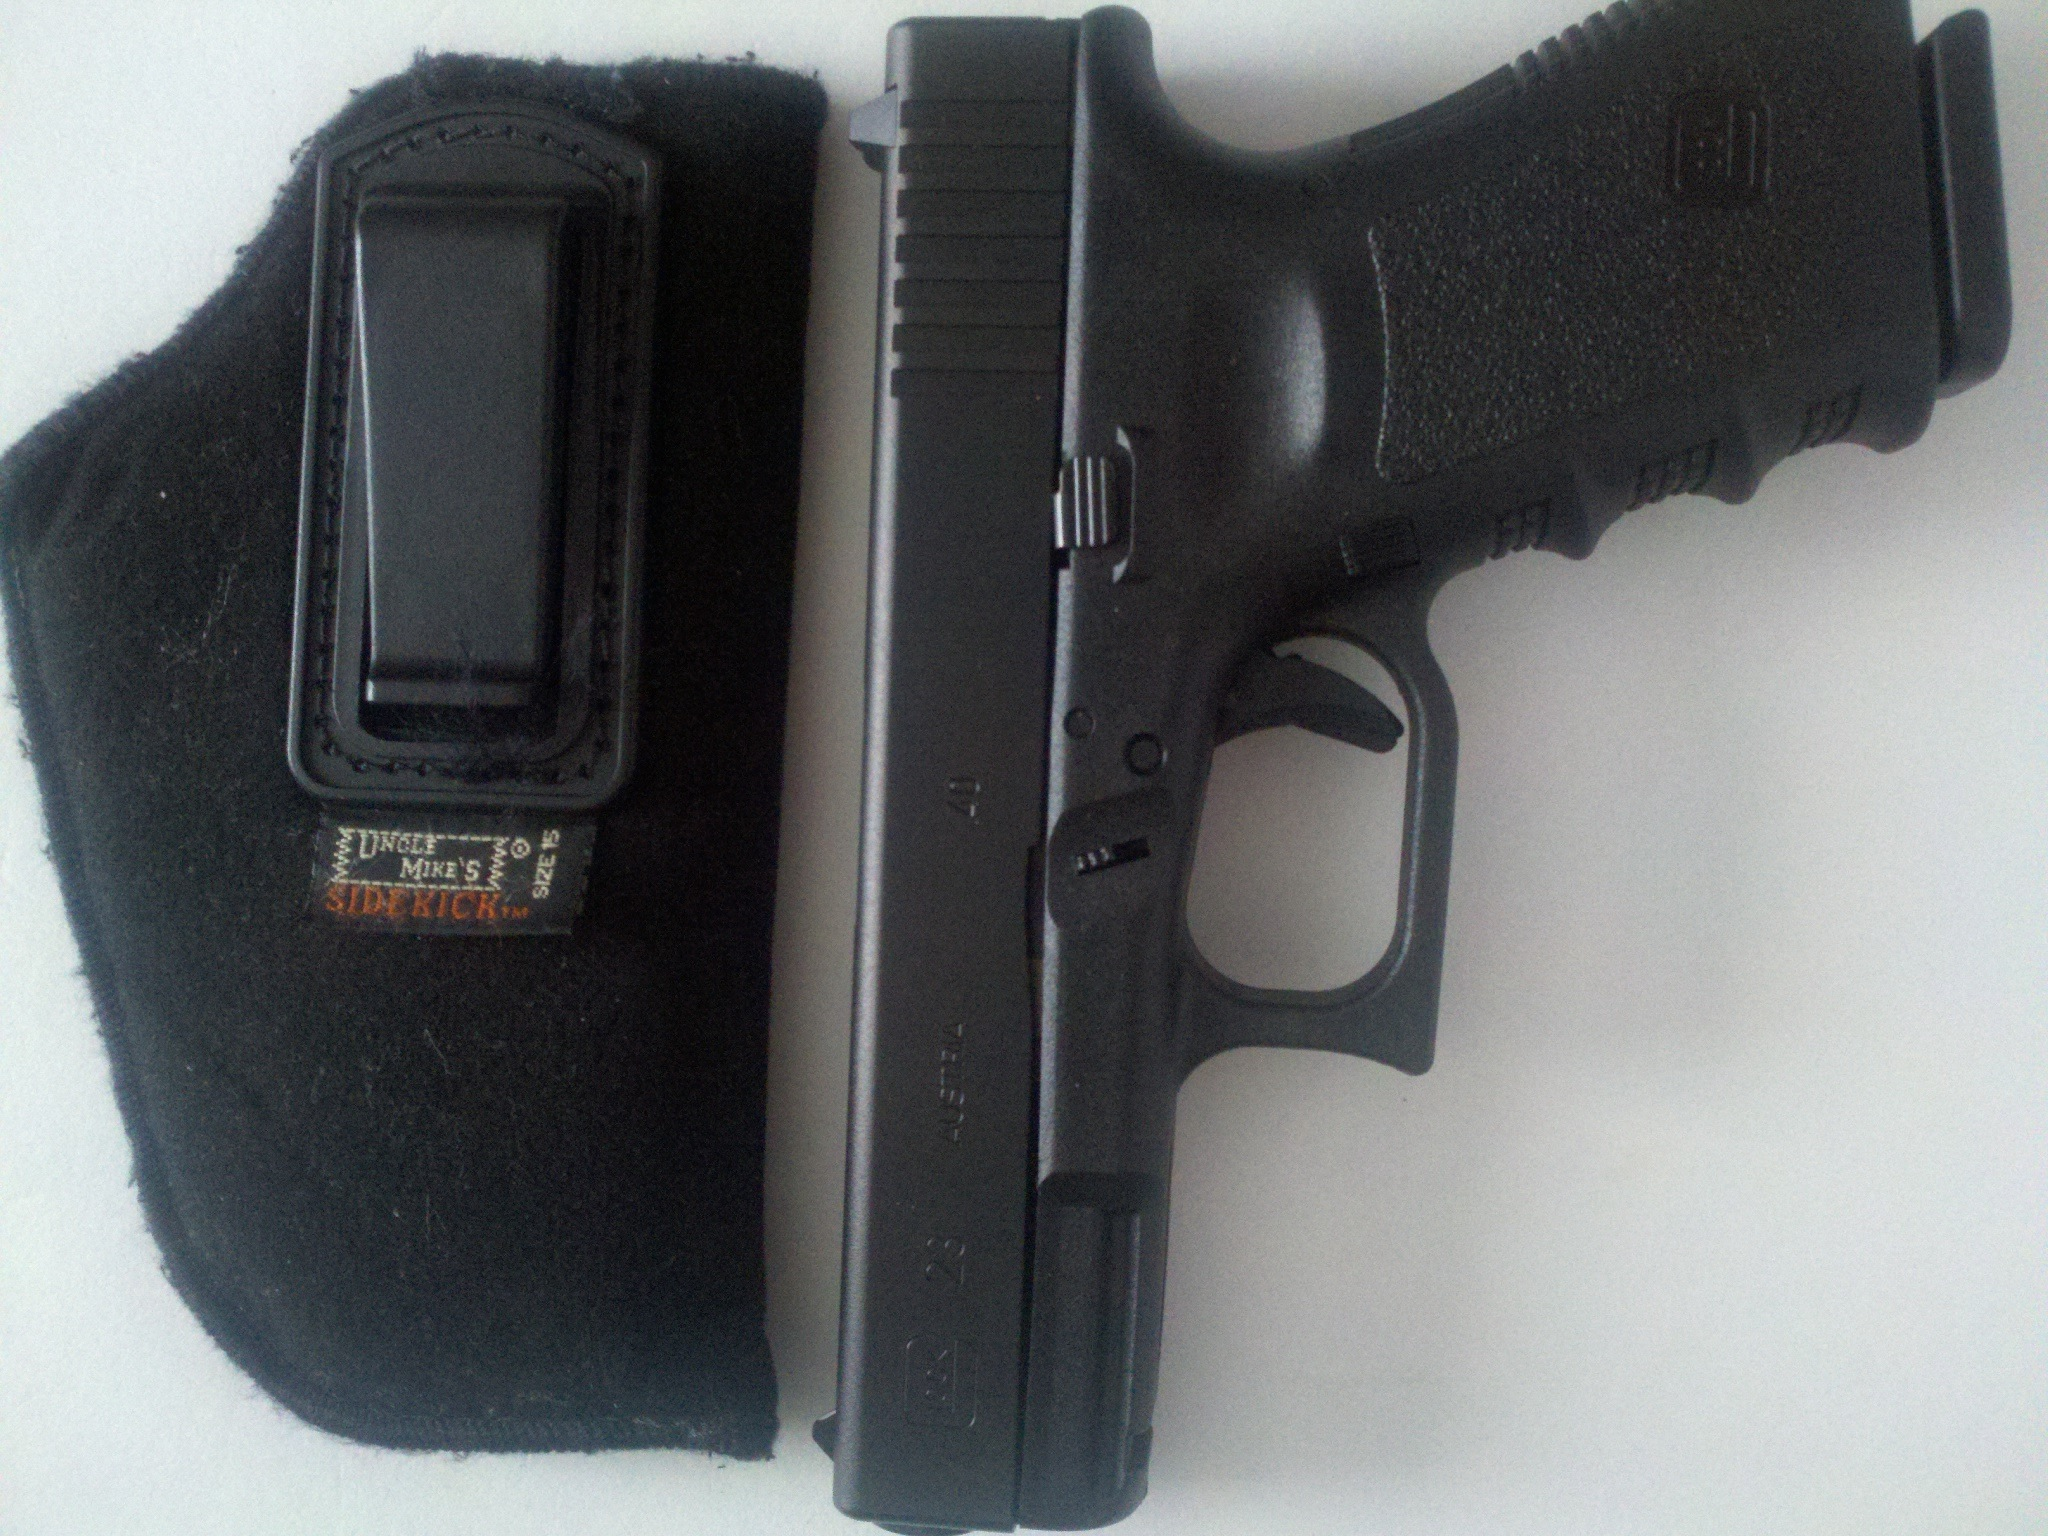 New member holster question!